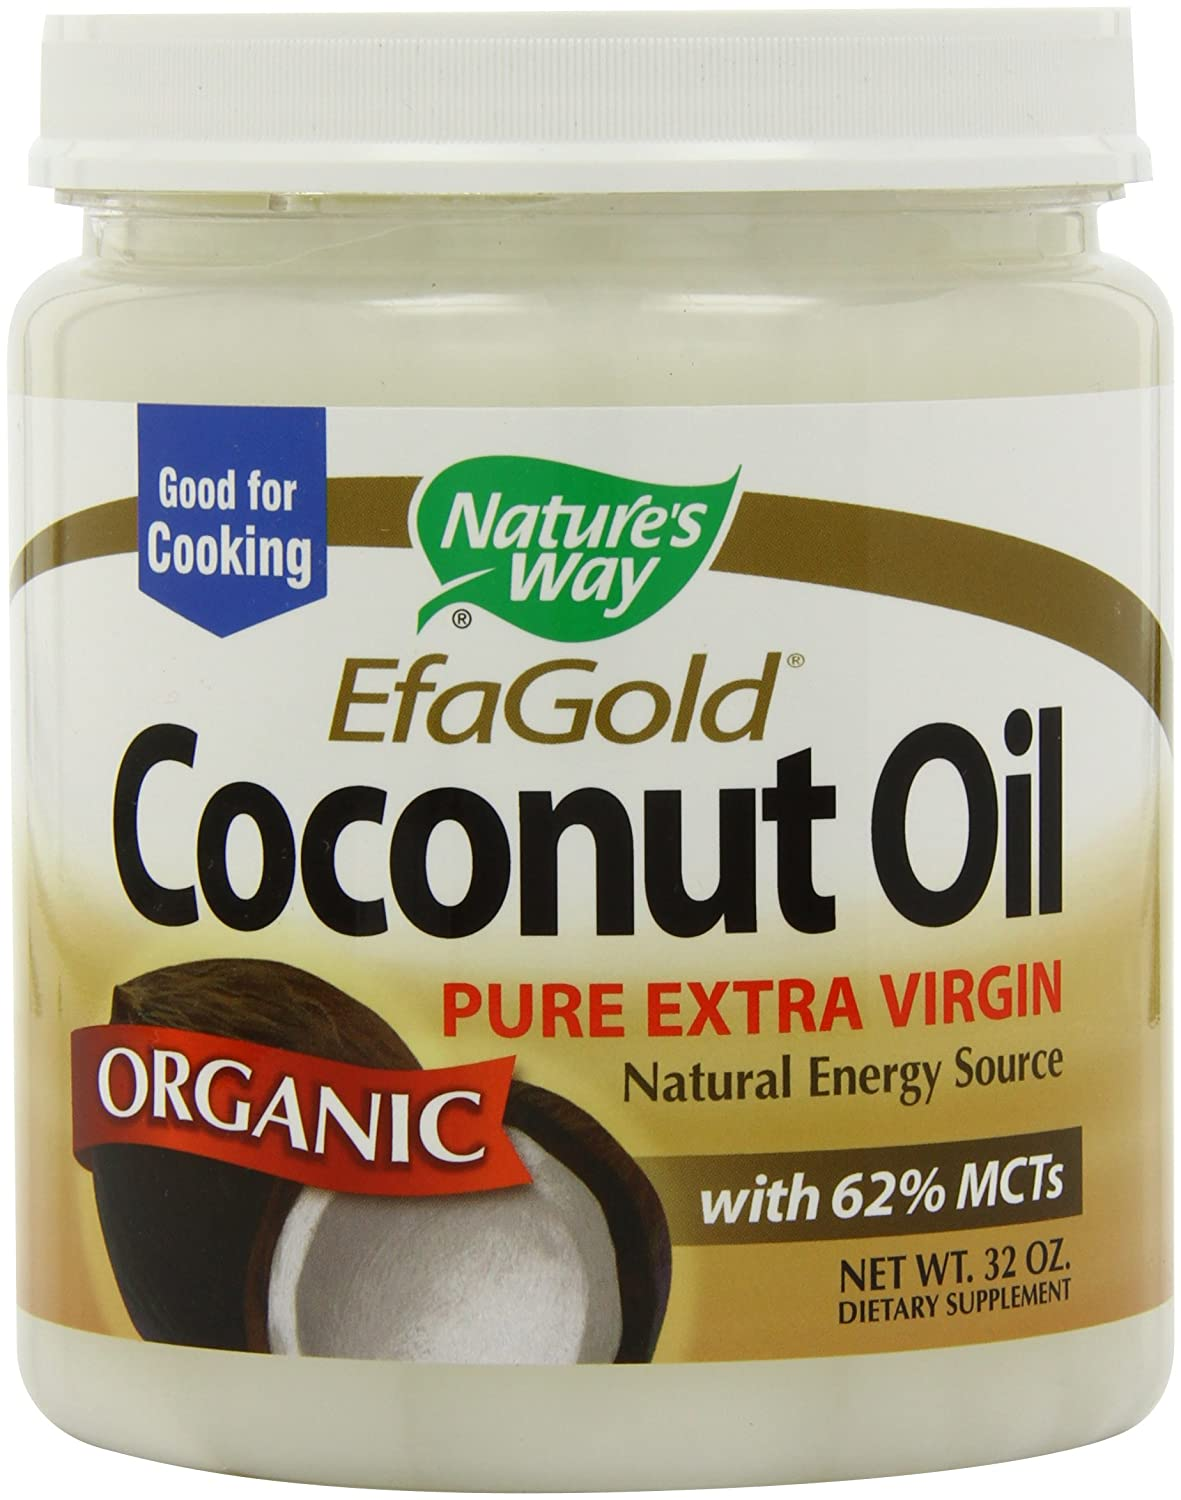 Amazon - Nature's Way Organic Coconut Oil - 32oz - $13.89